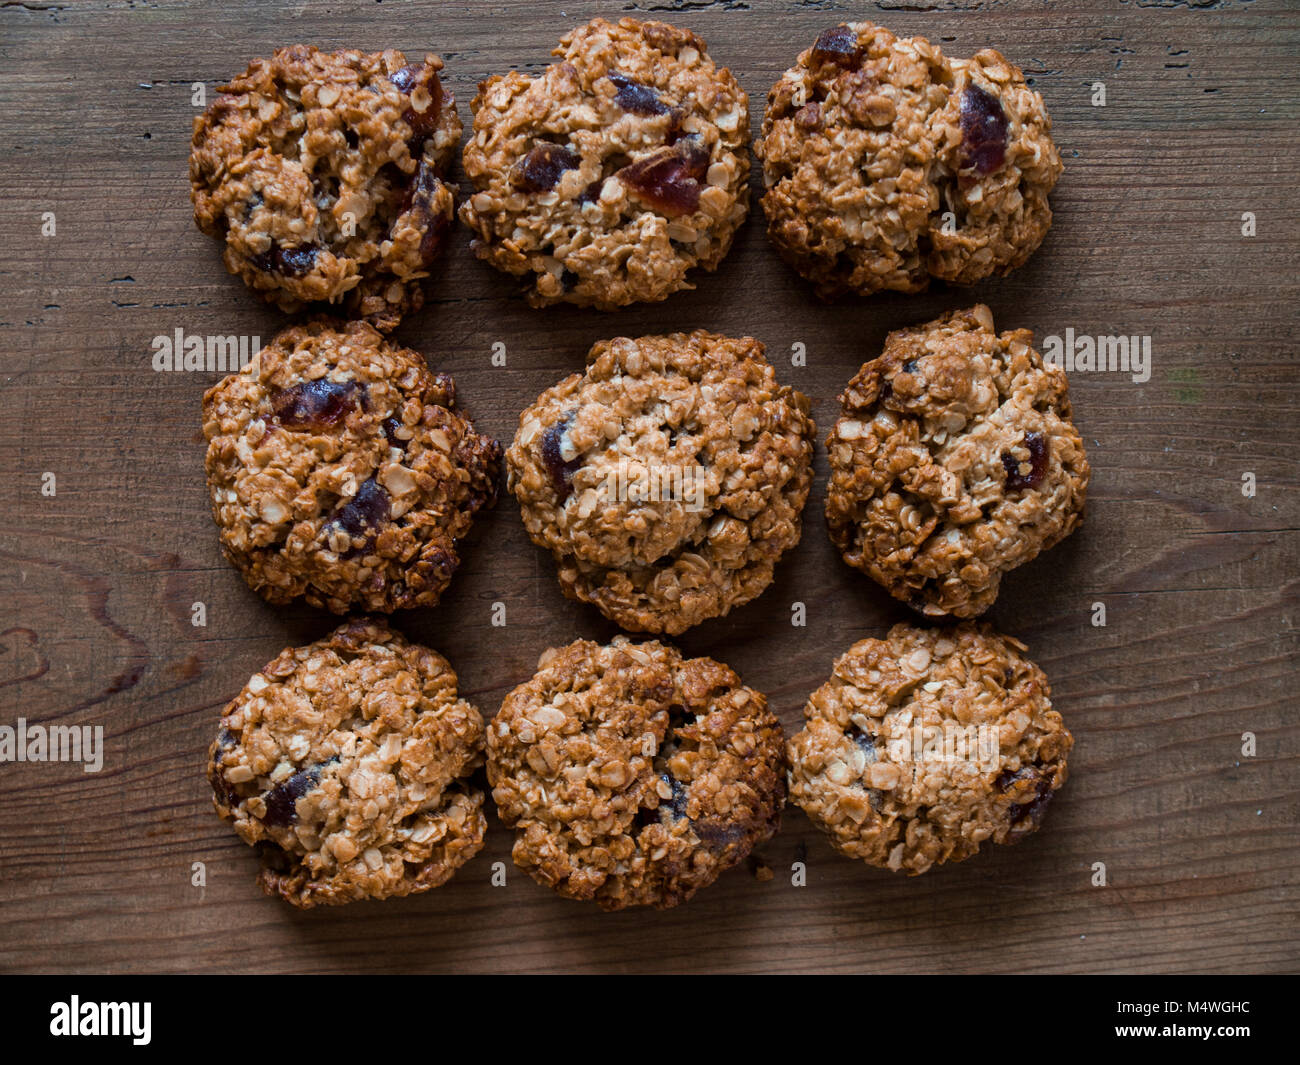 home made oat biscuits with dried cherries. View from above with a rustic background. - Stock Image